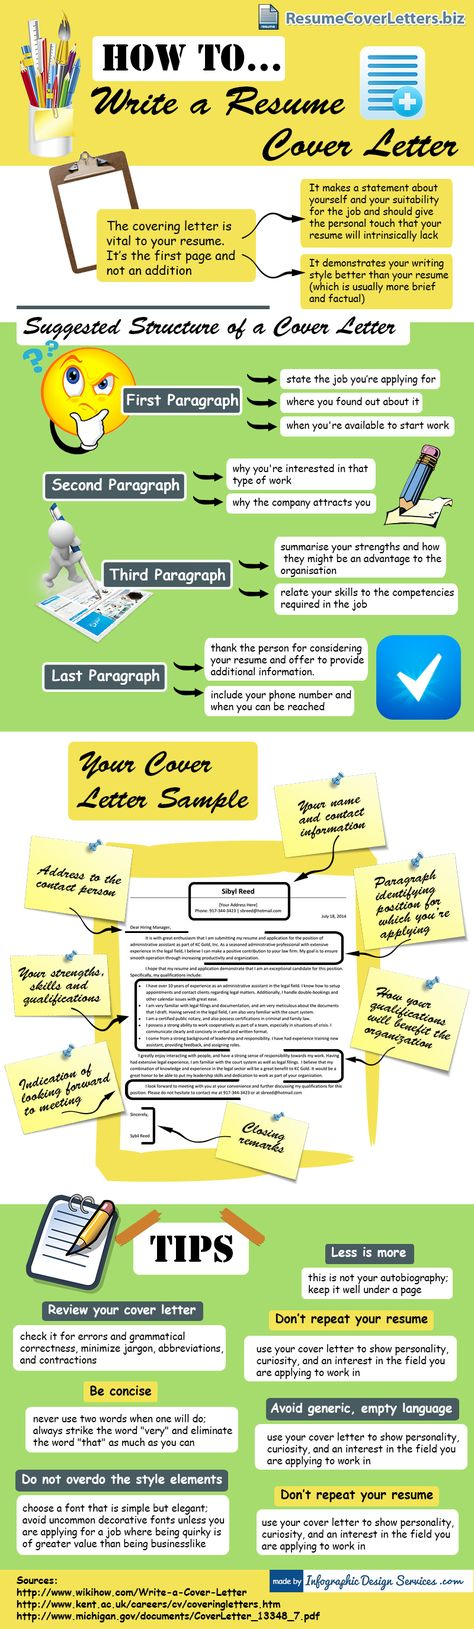 resume cover letter writing tips Places to Visit Pinterest - writing a resume tips